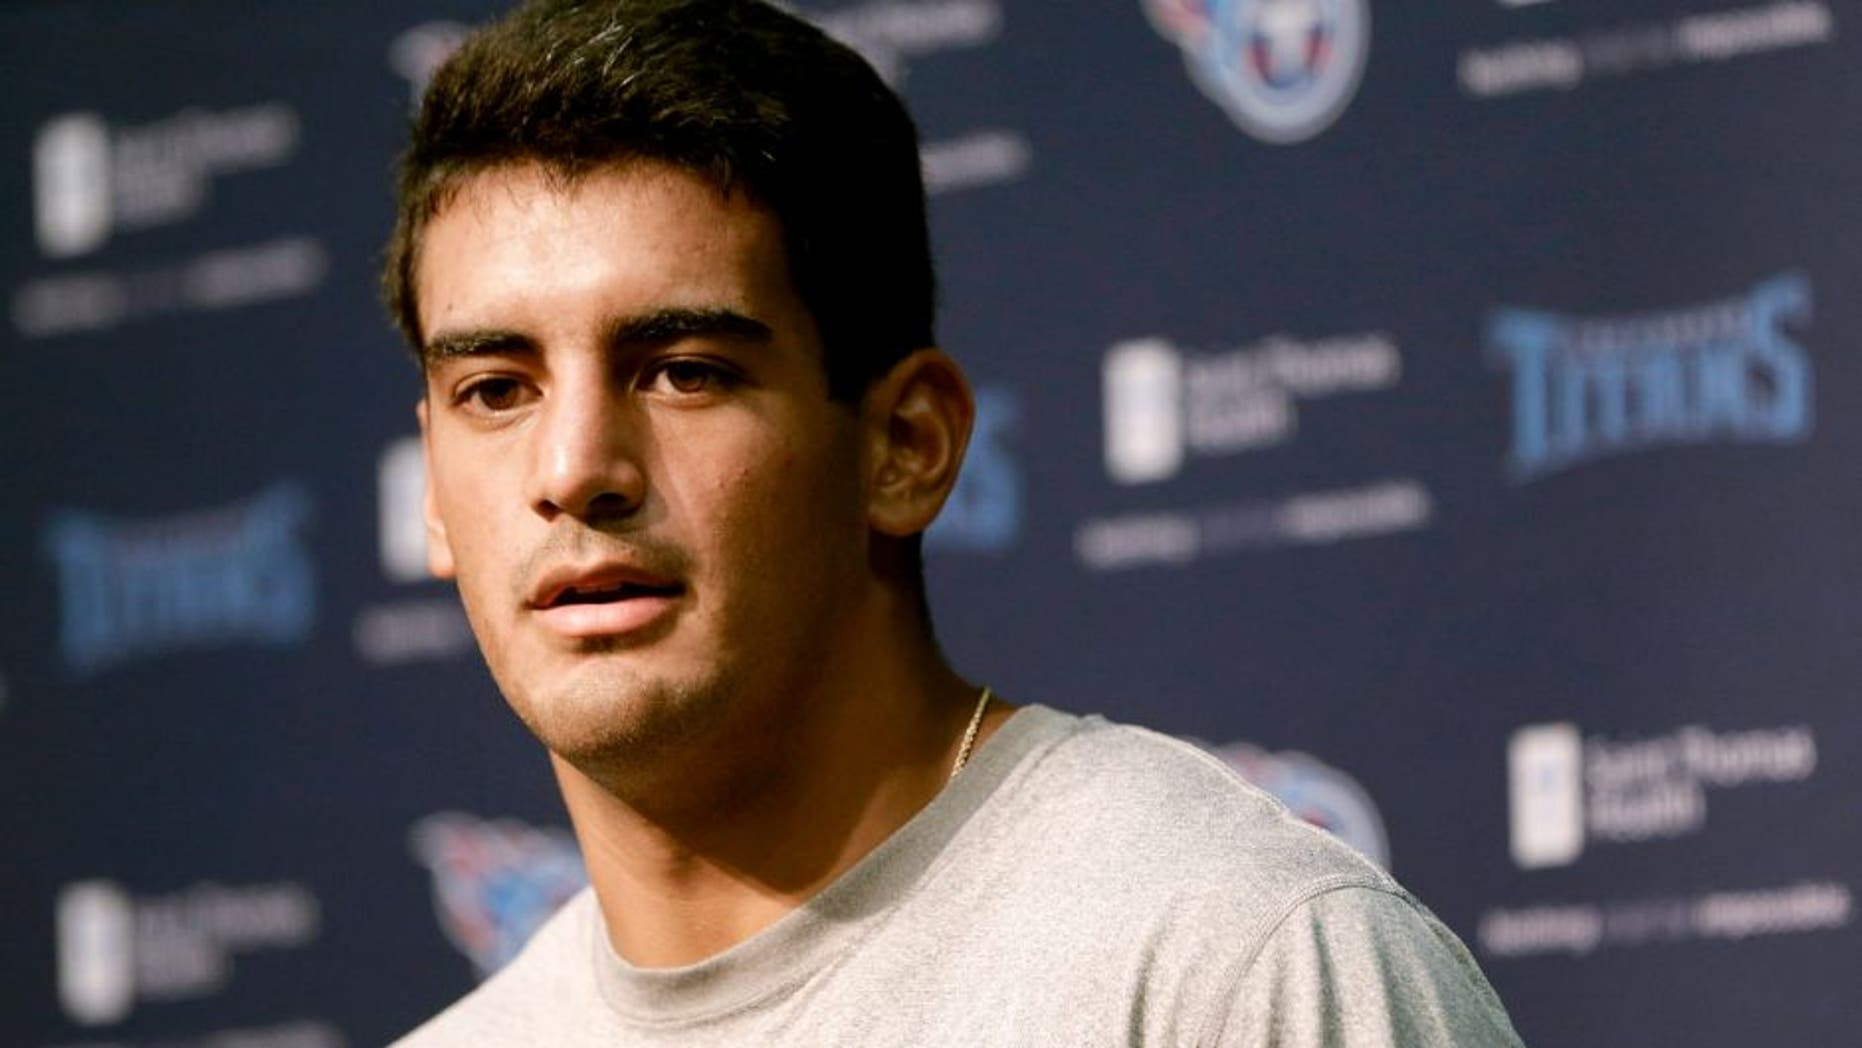 Tennessee Titans quarterback Marcus Mariota answers a question during a news conference Thursday, July 30, 2015, in Nashville, Tenn. The Titans begin NFL football training camp Friday. (AP Photo/Mark Humphrey)